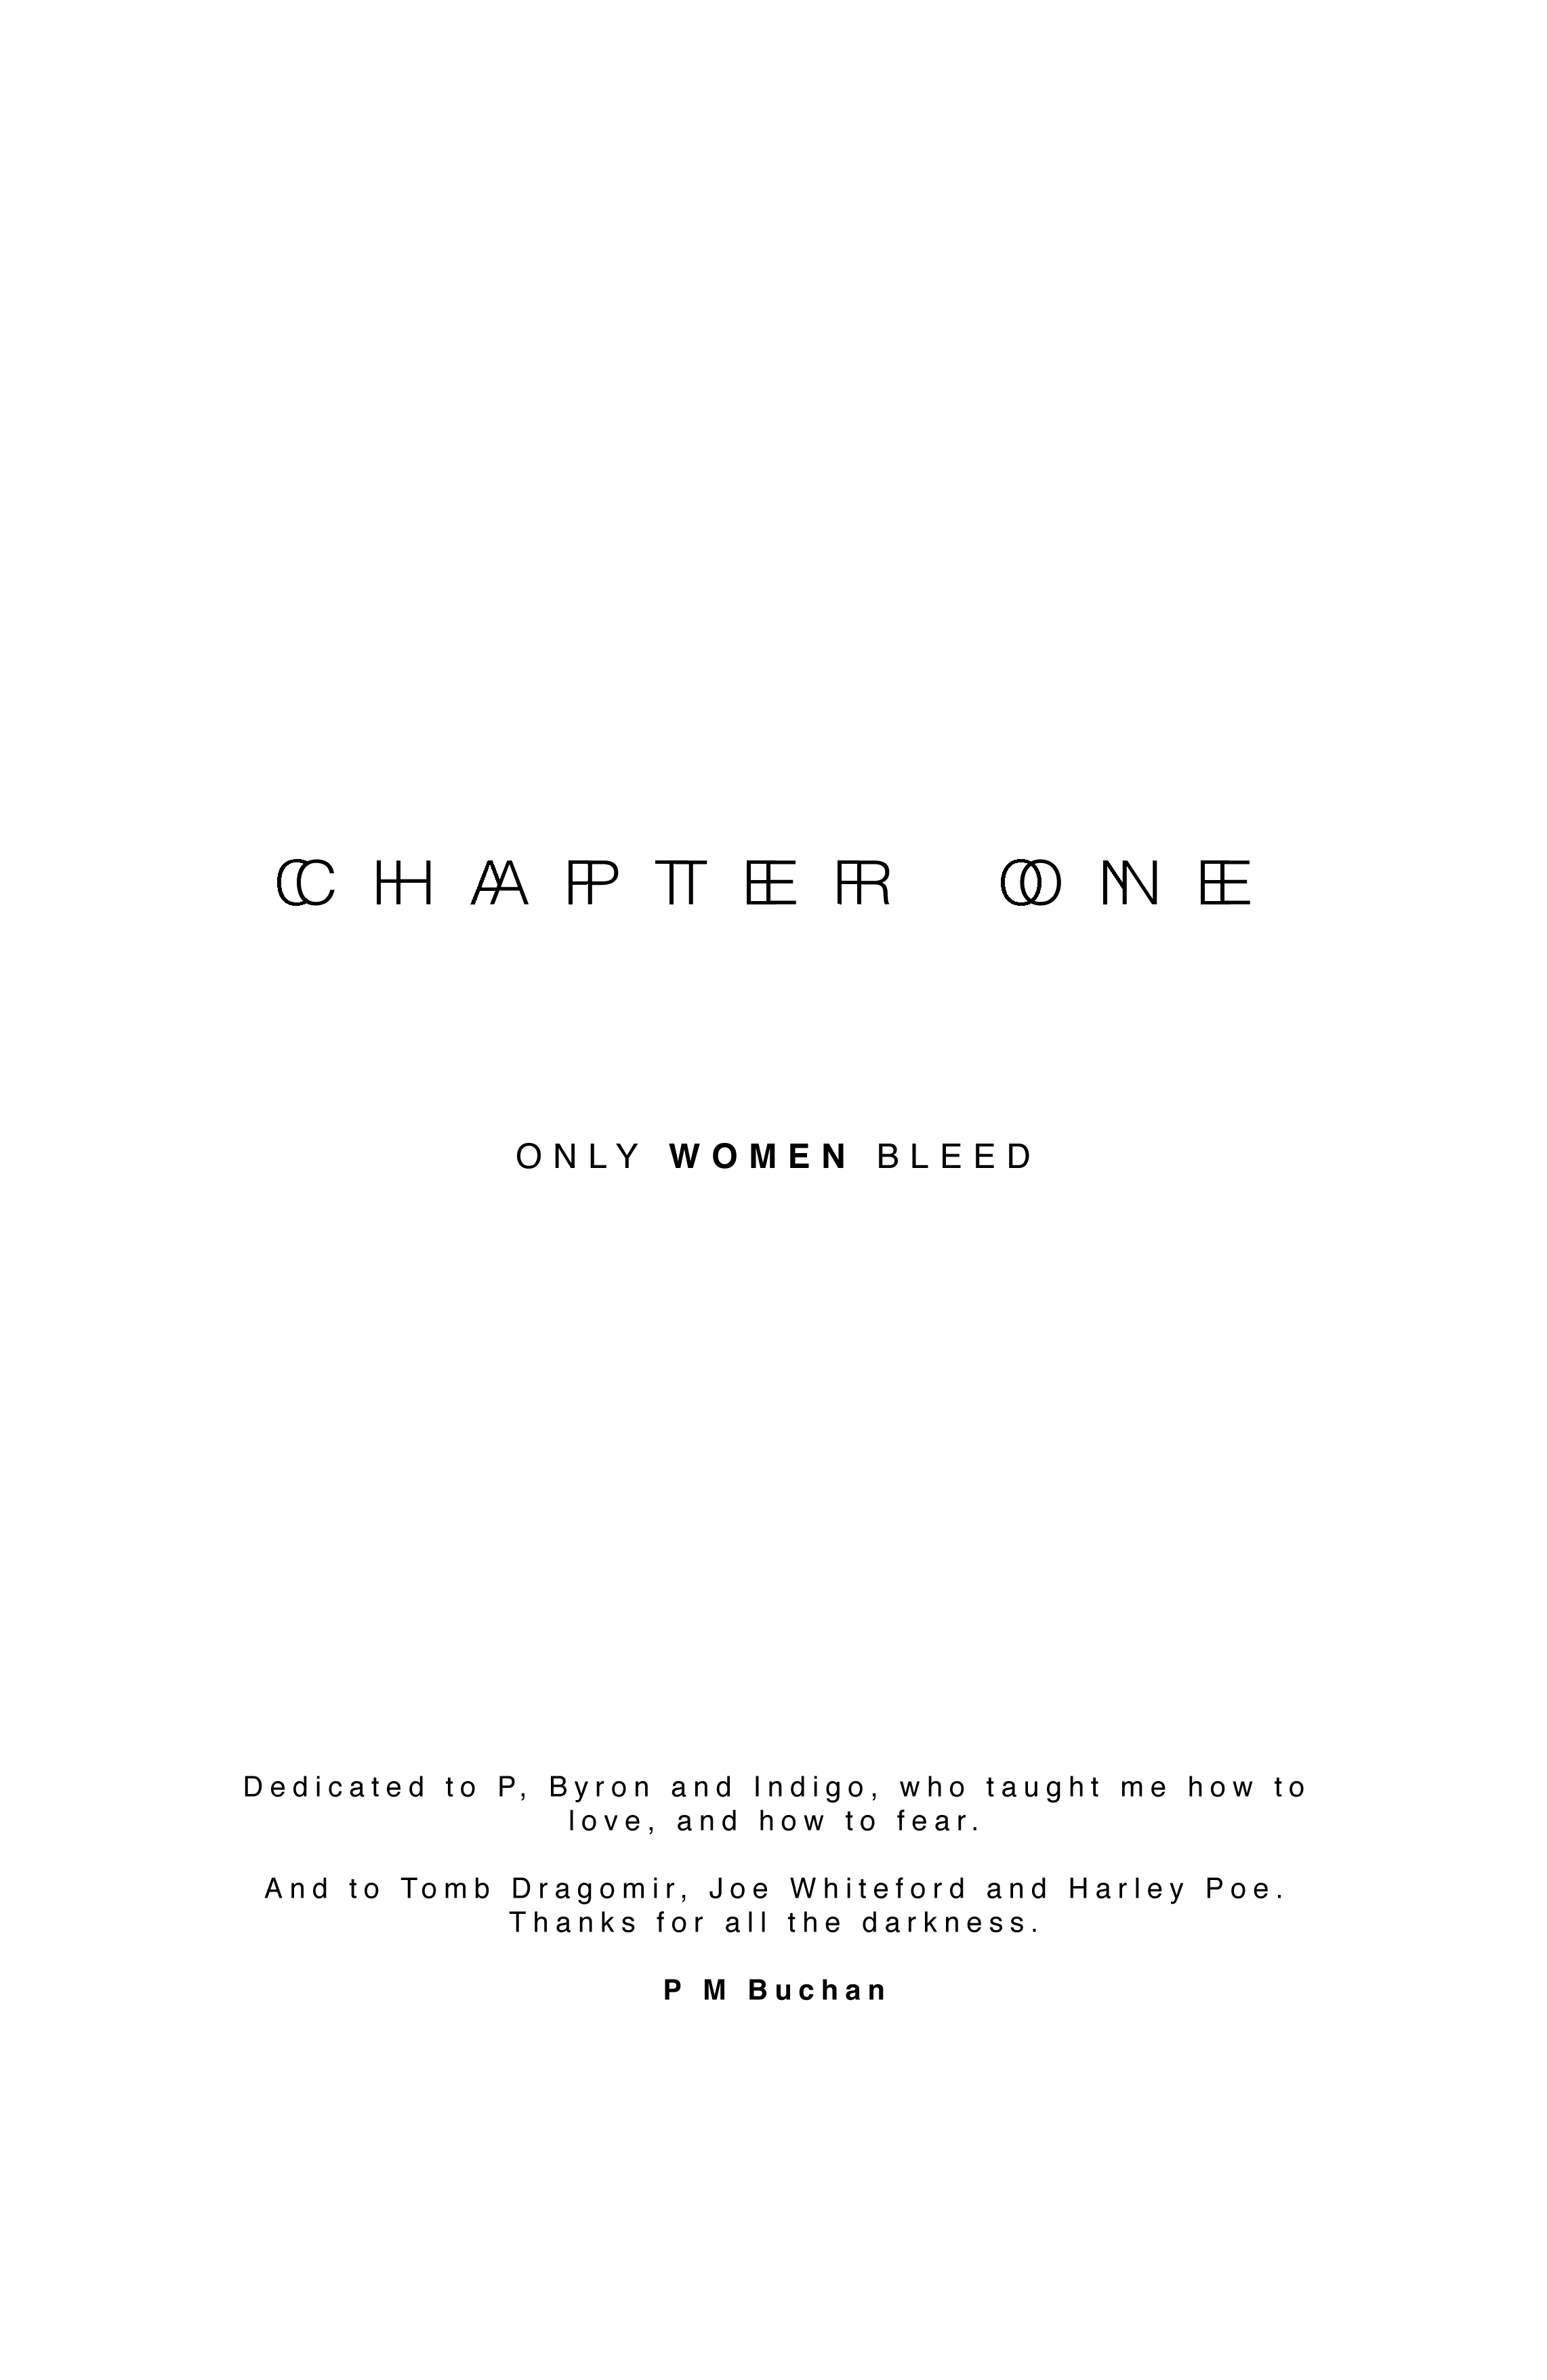 Chapter 1 – Only Women Bleed